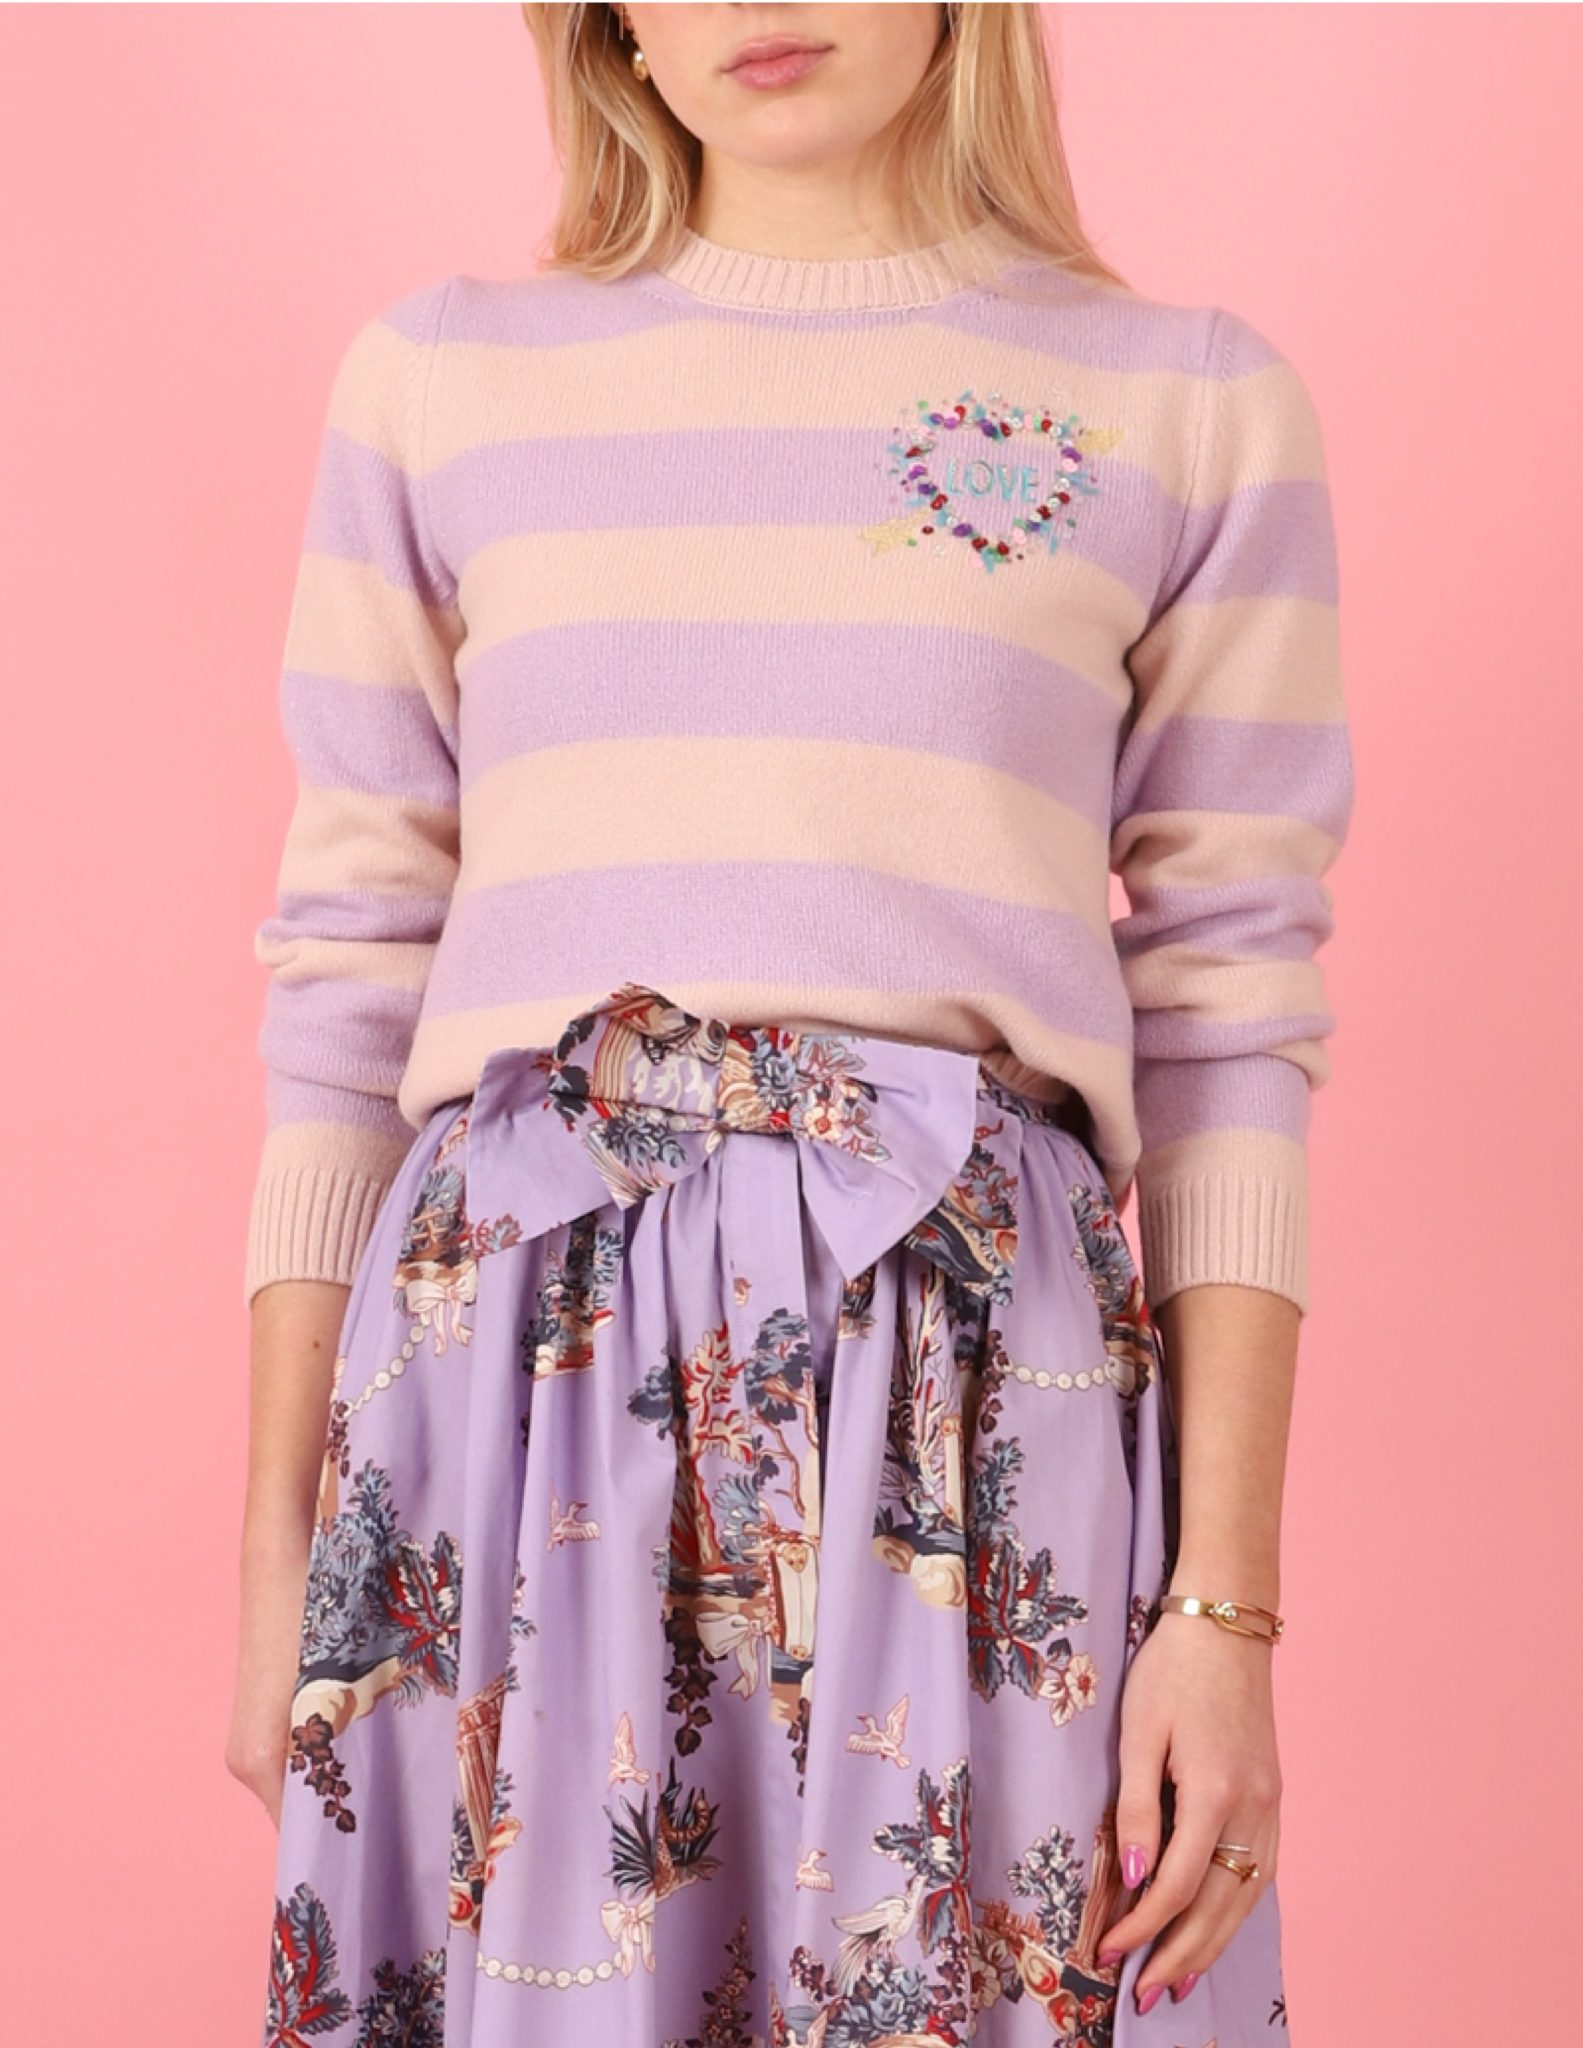 Where To Buy Unique Sweaters: Le Lion Striped Petite Crew with Rainbow Heart | Rhyme & Reason